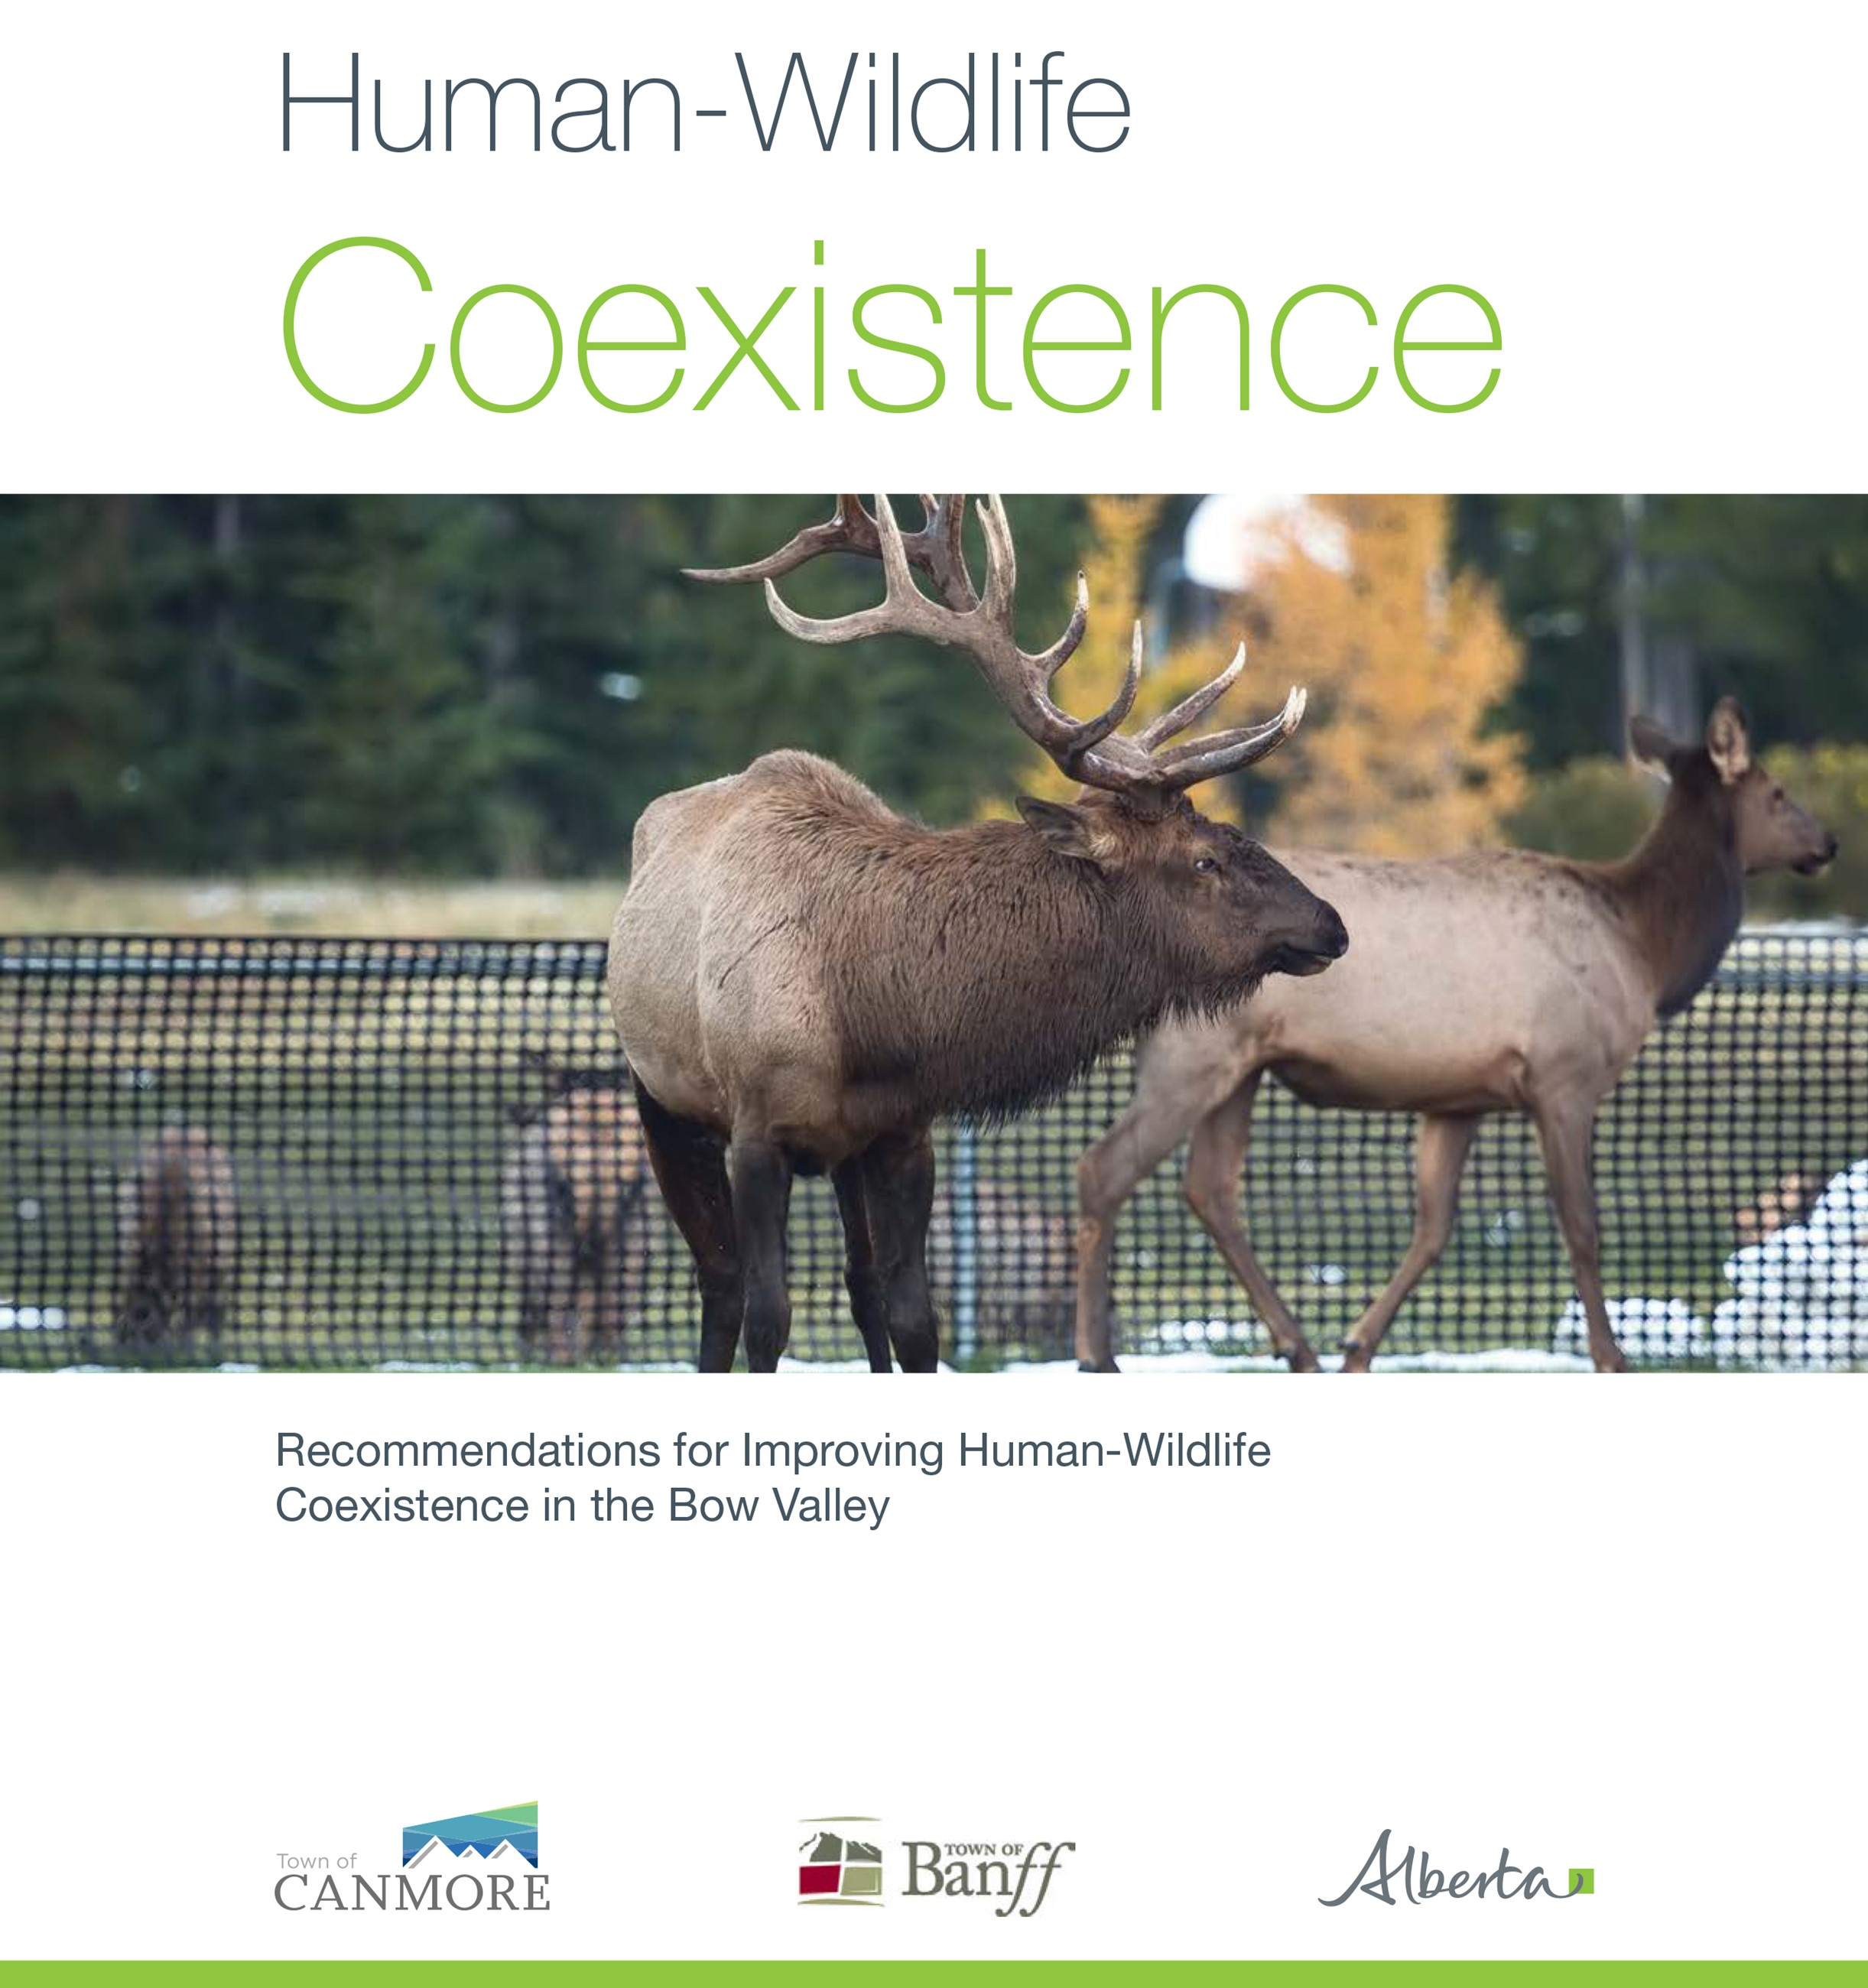 Human Wildlife Coexistence Report Opens in new window